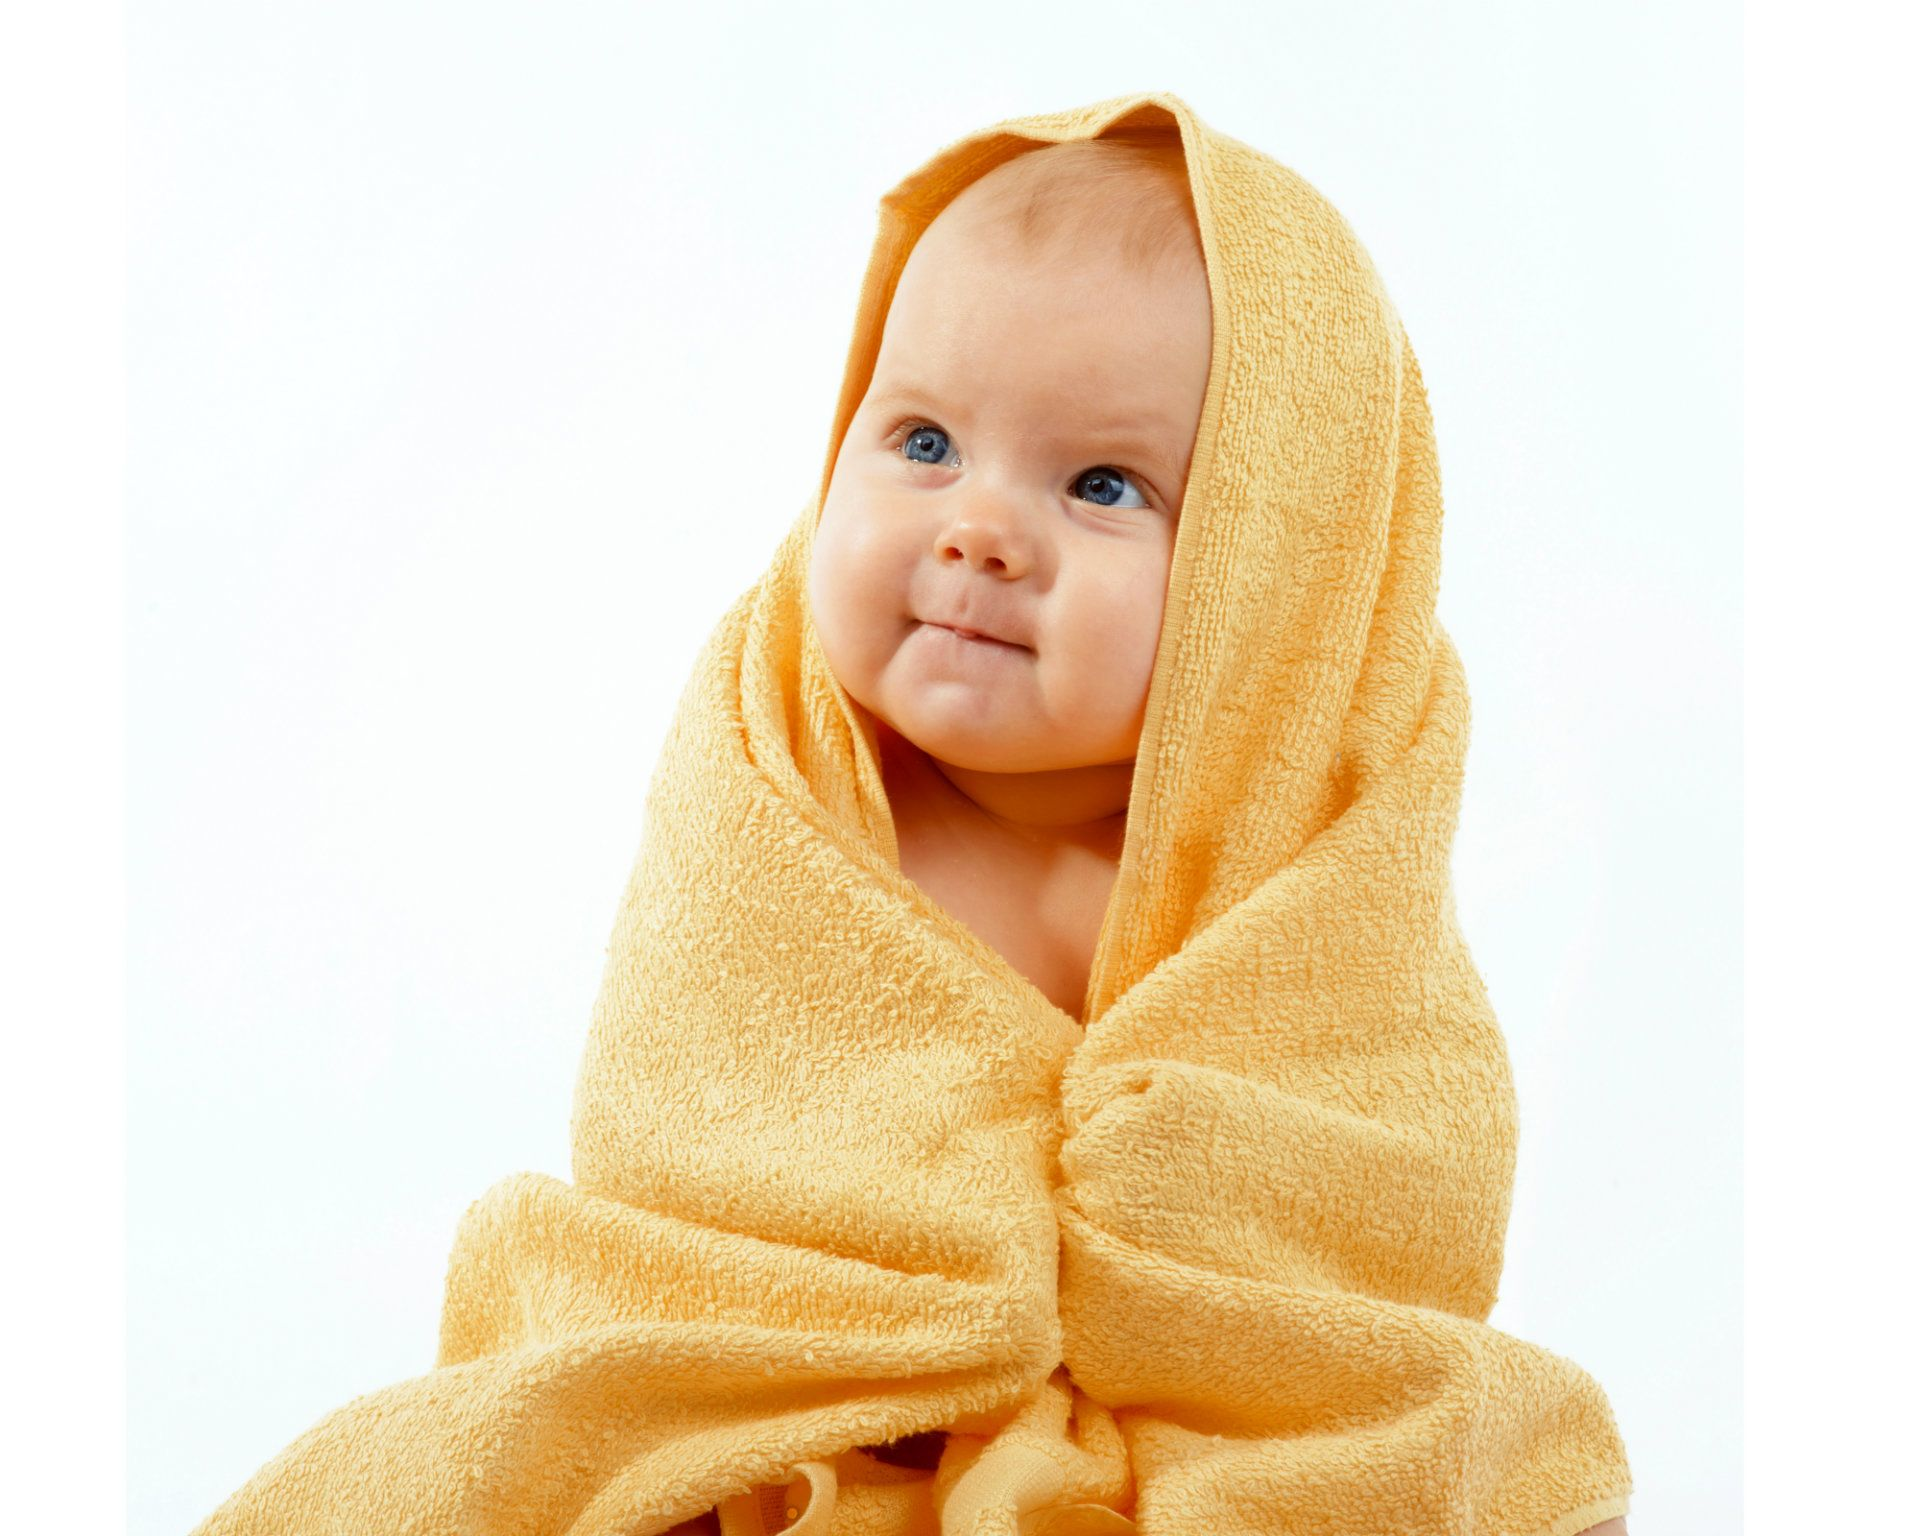 Baby boy background wallpaper baby boy background images baby boy - Adorable Happy Baby In Yellow Towel Stock Photo From The Largest Library Of Royalty Free Images Only At Shutterstock Cute Baby Boy